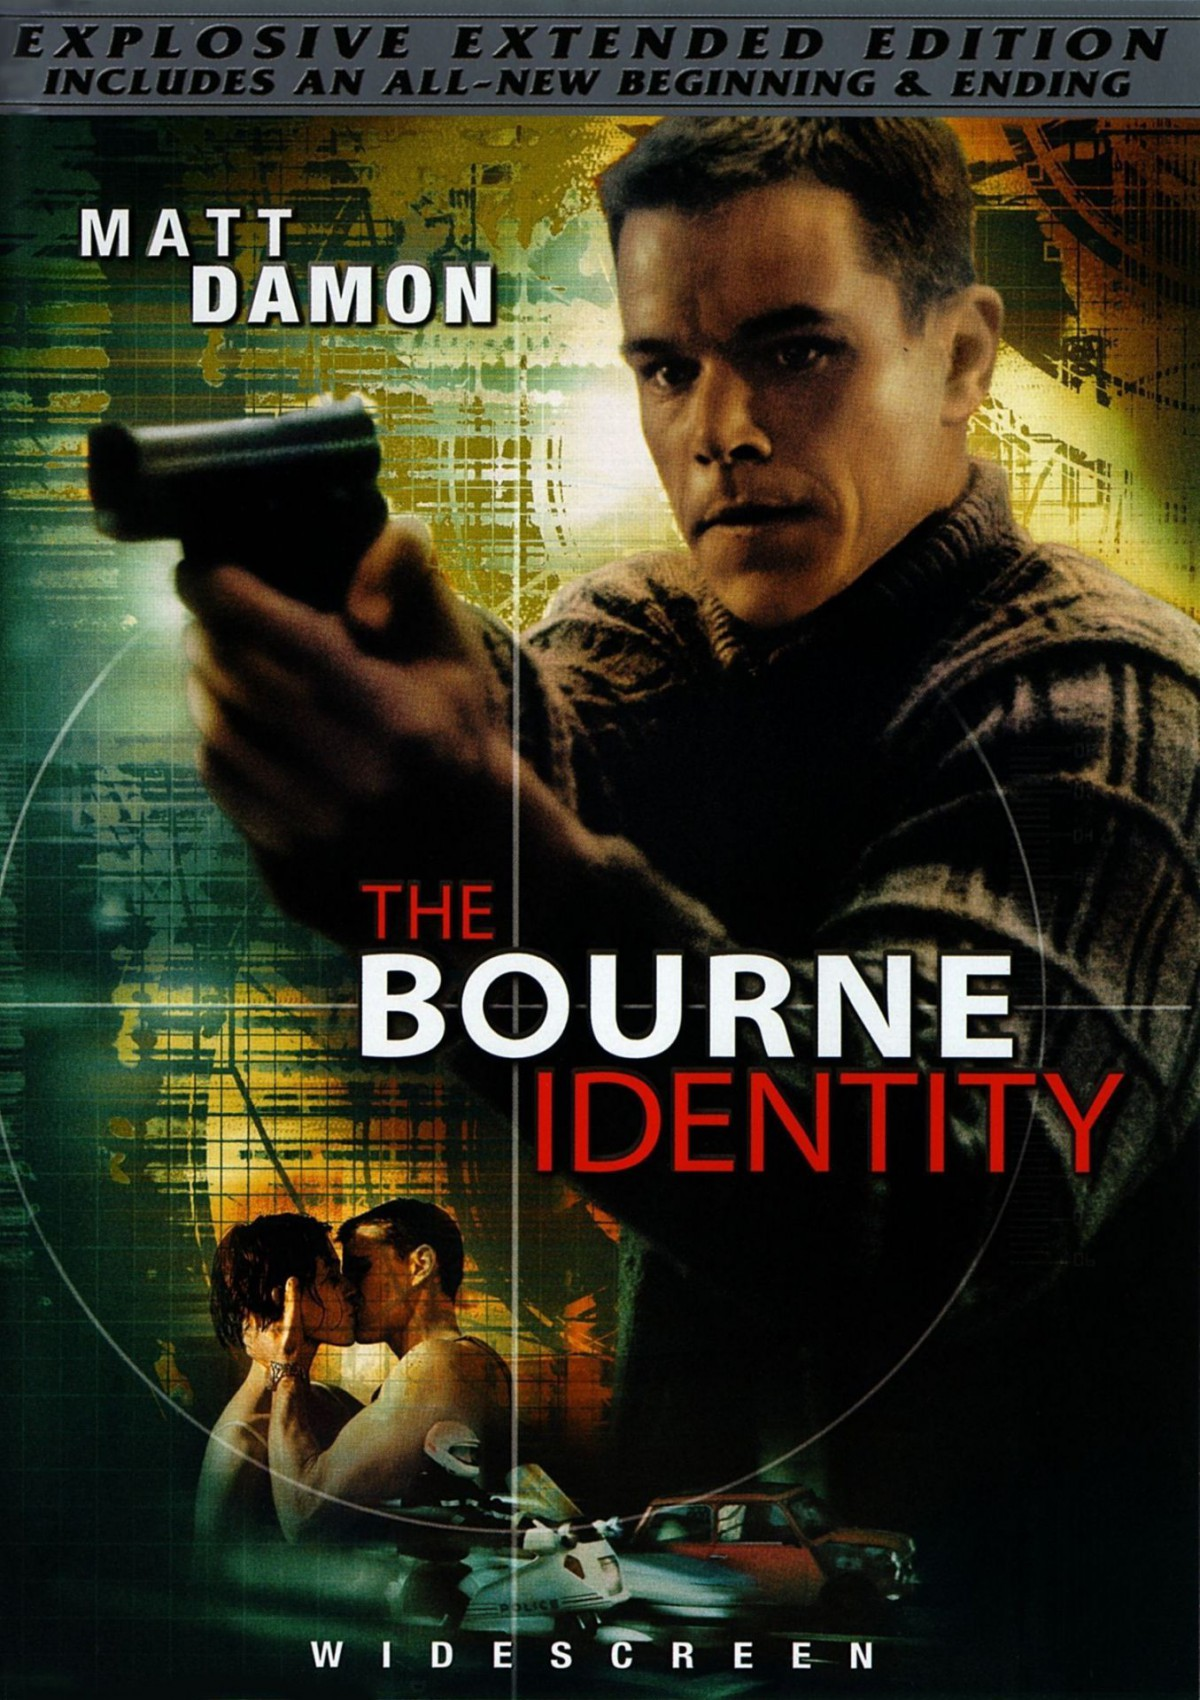 28. The Bourne Identity (2002)